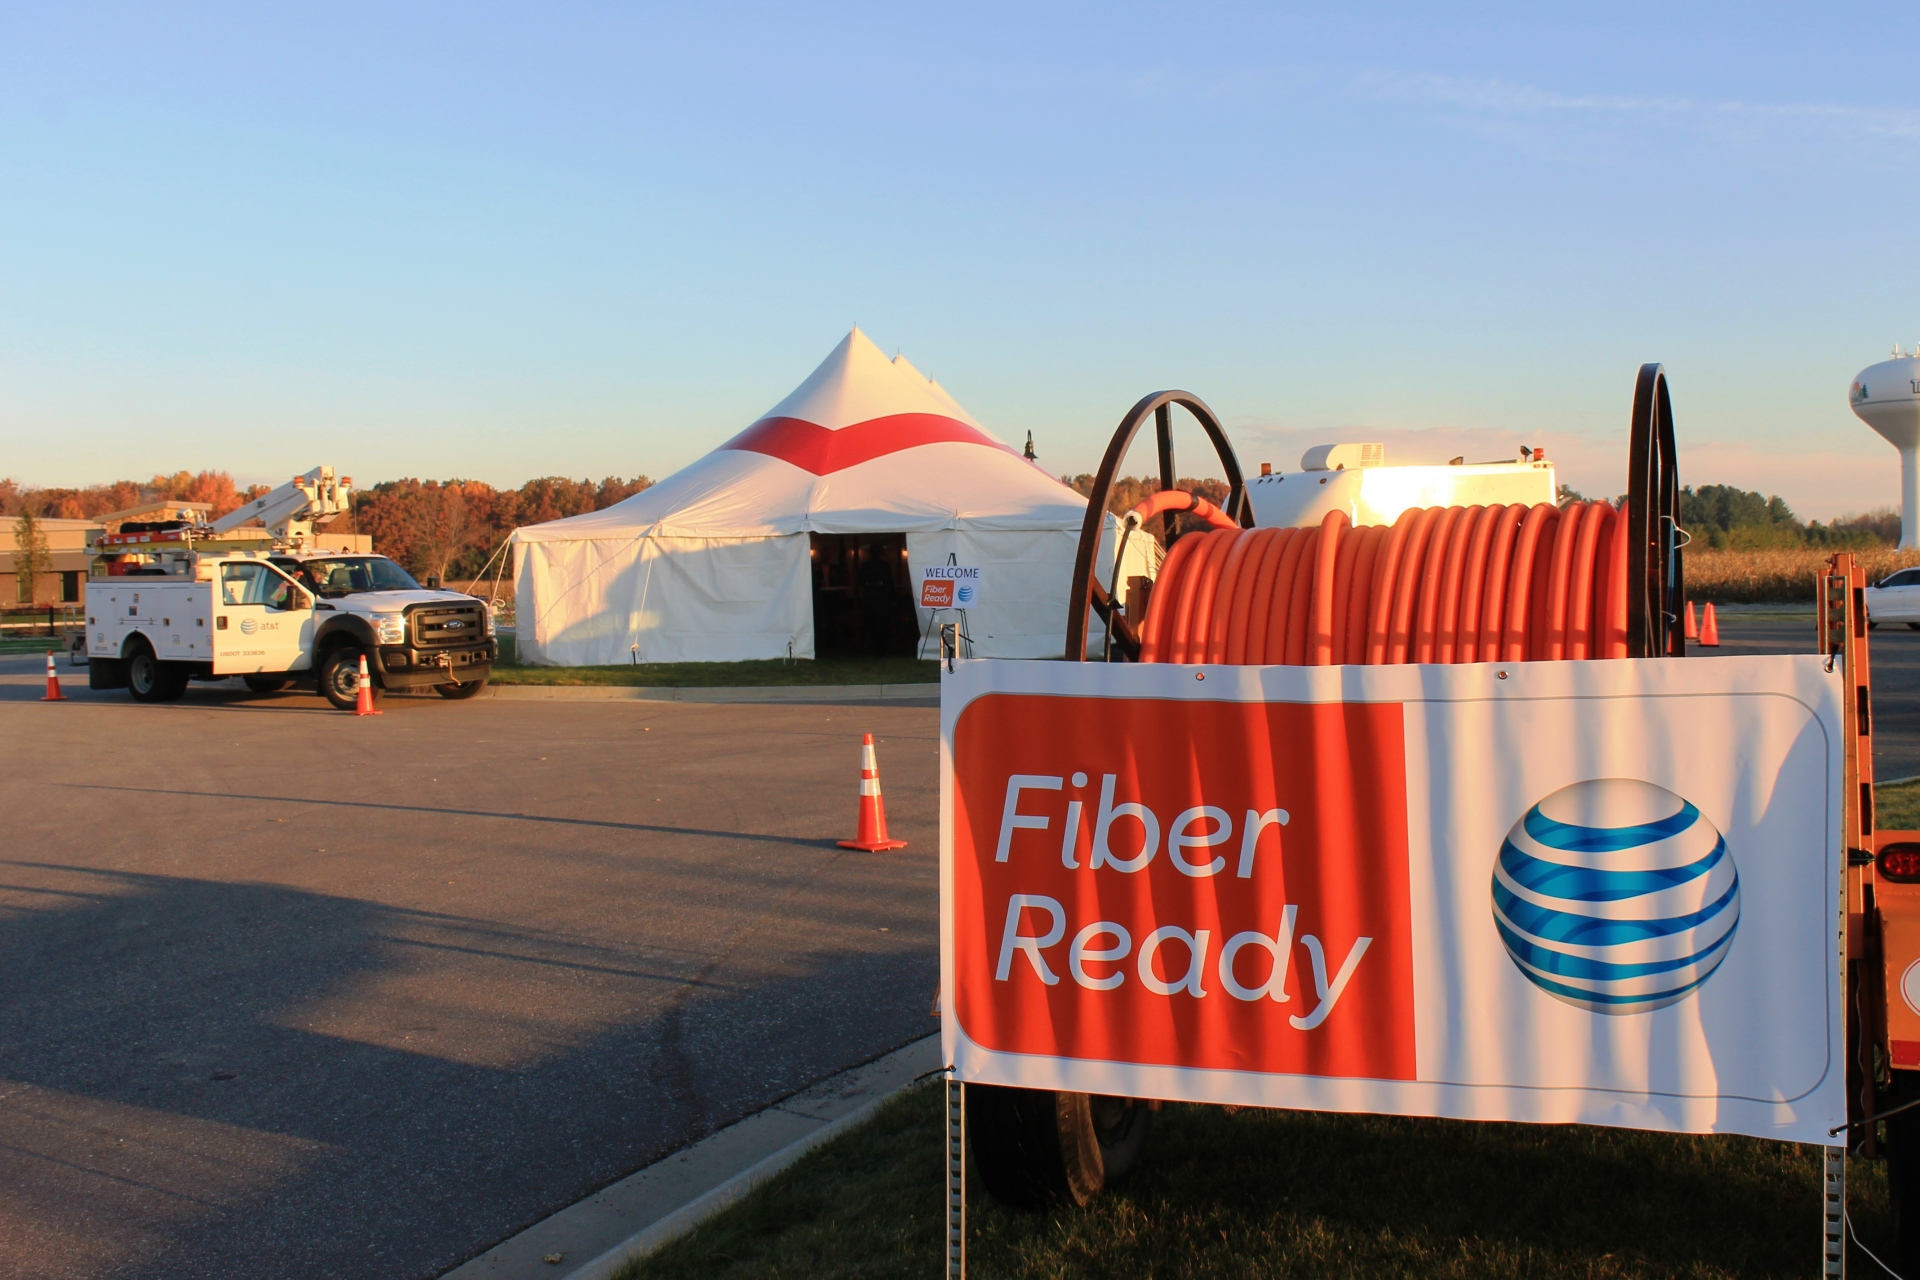 Tech Park is Fiber Ready